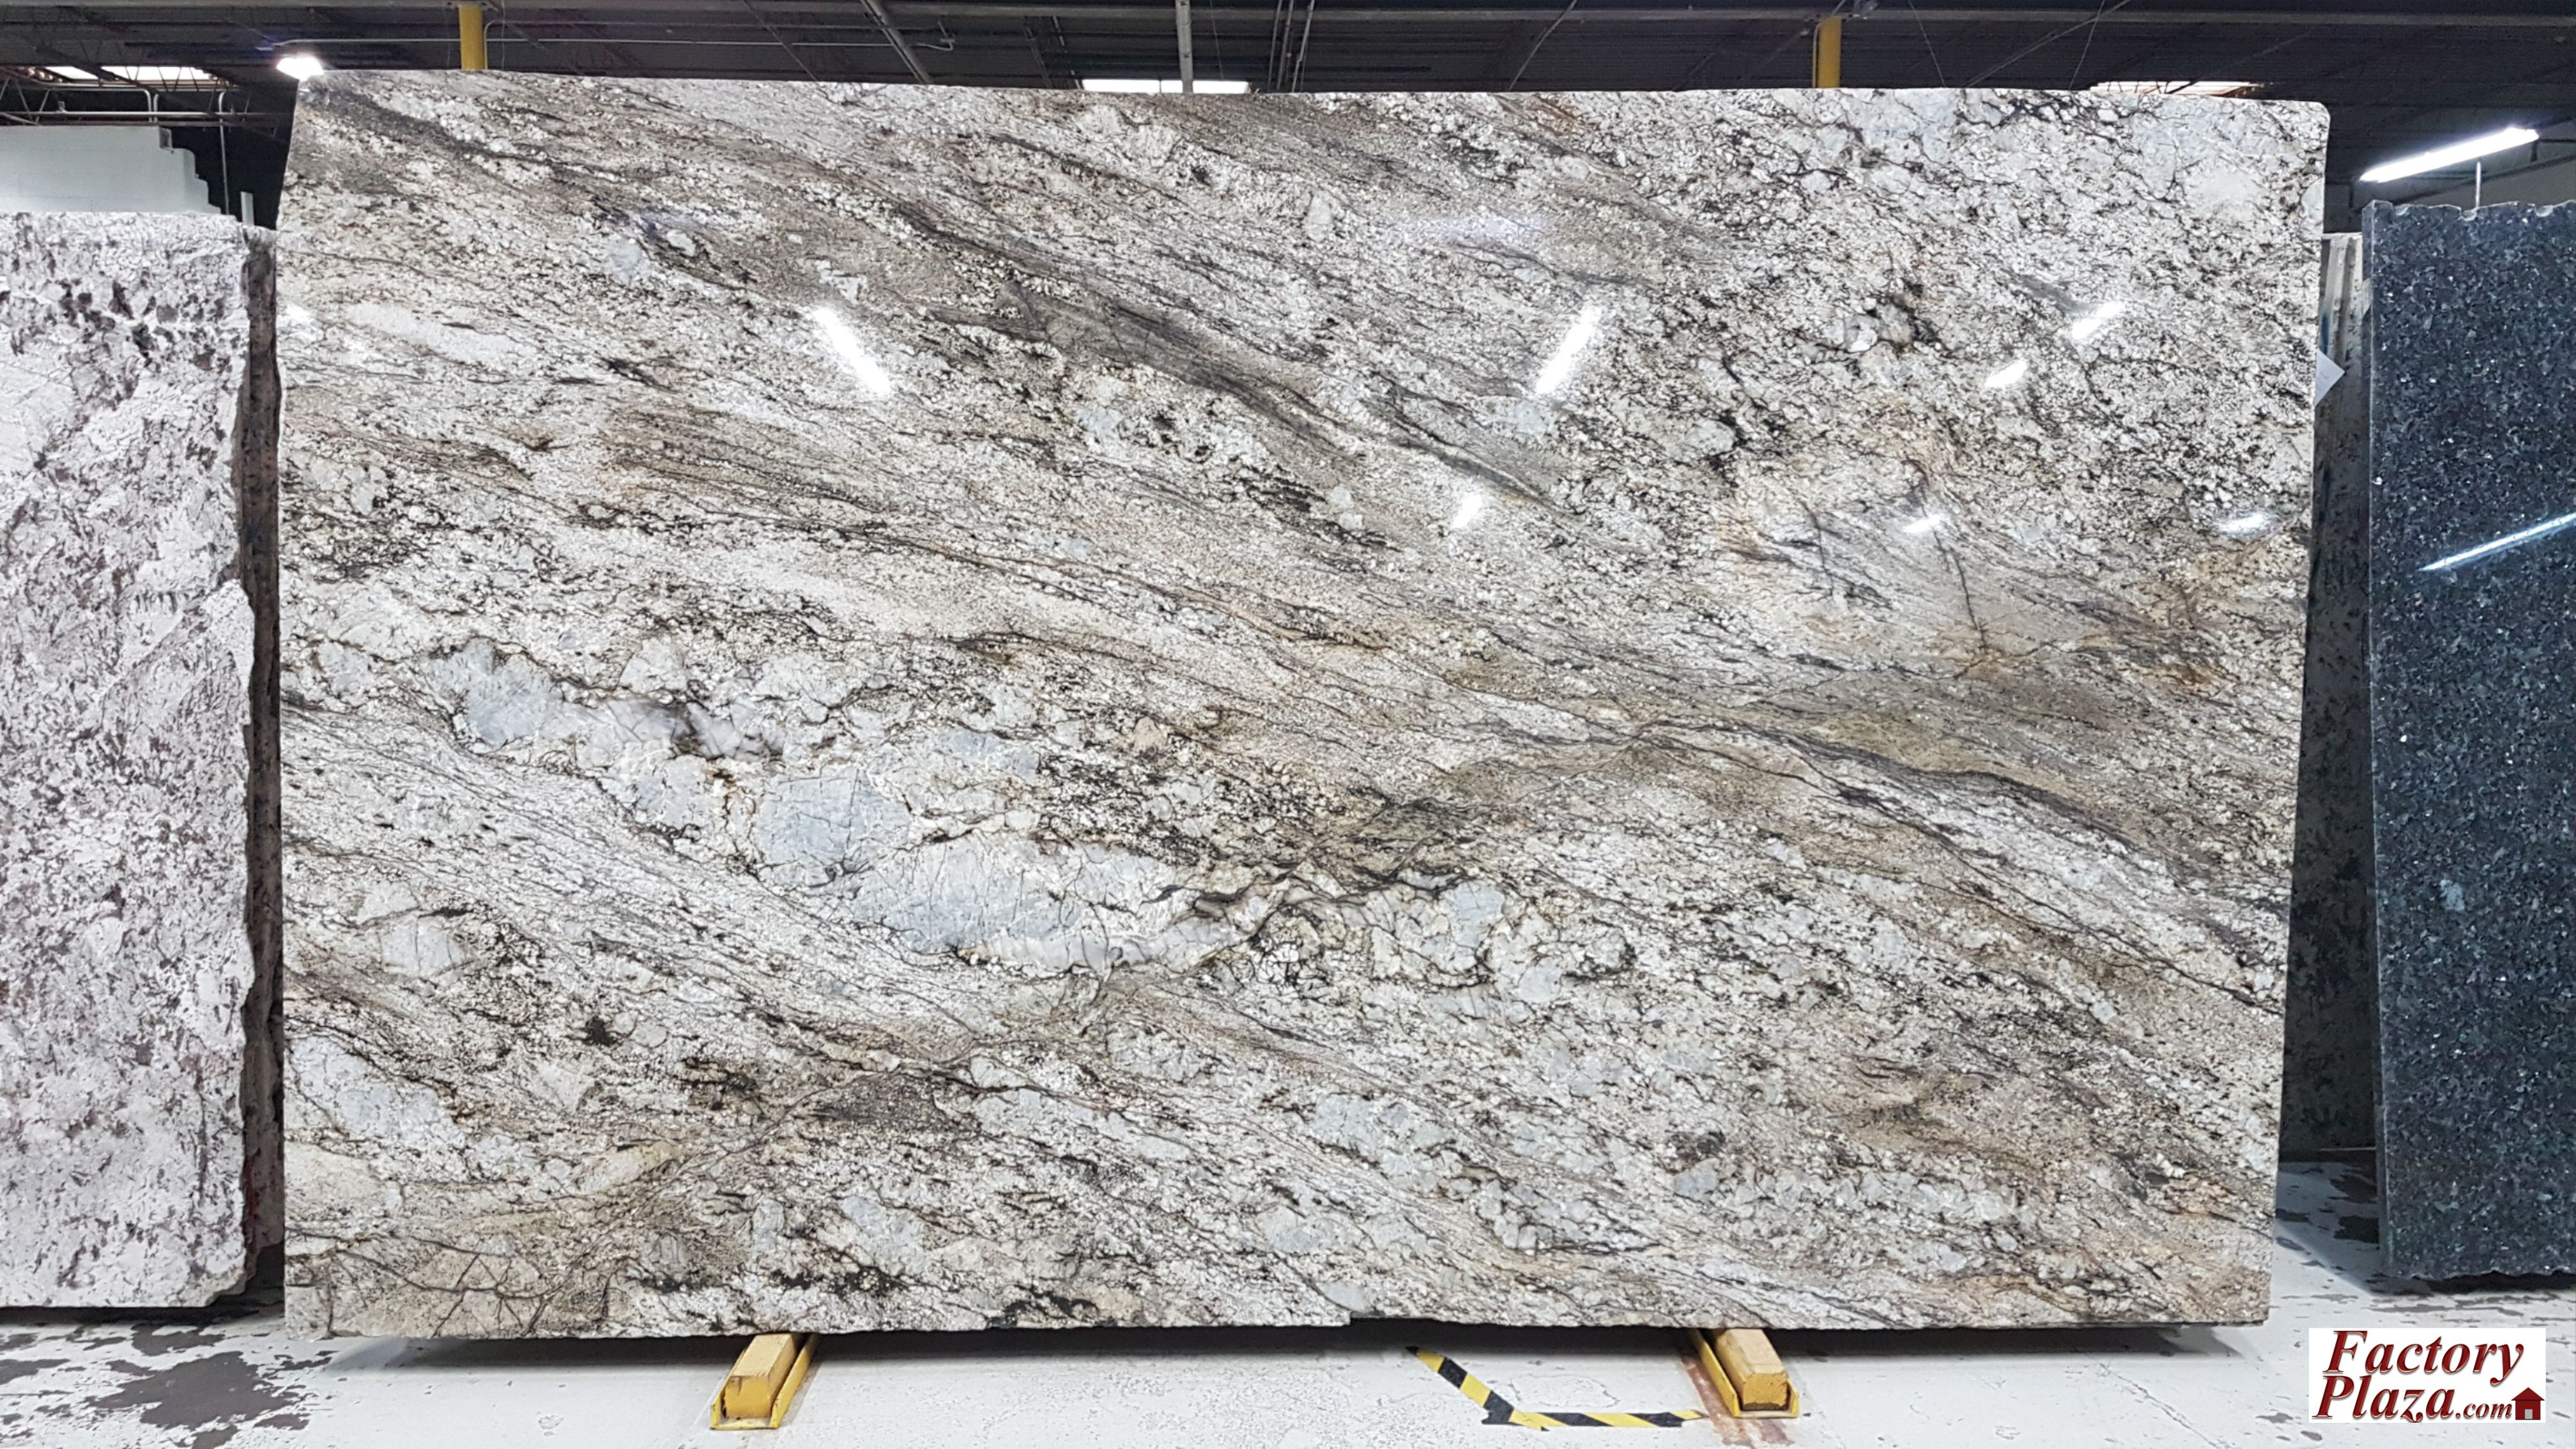 Factory Plaza Is A Direct Importer And Fabricator Of Stone